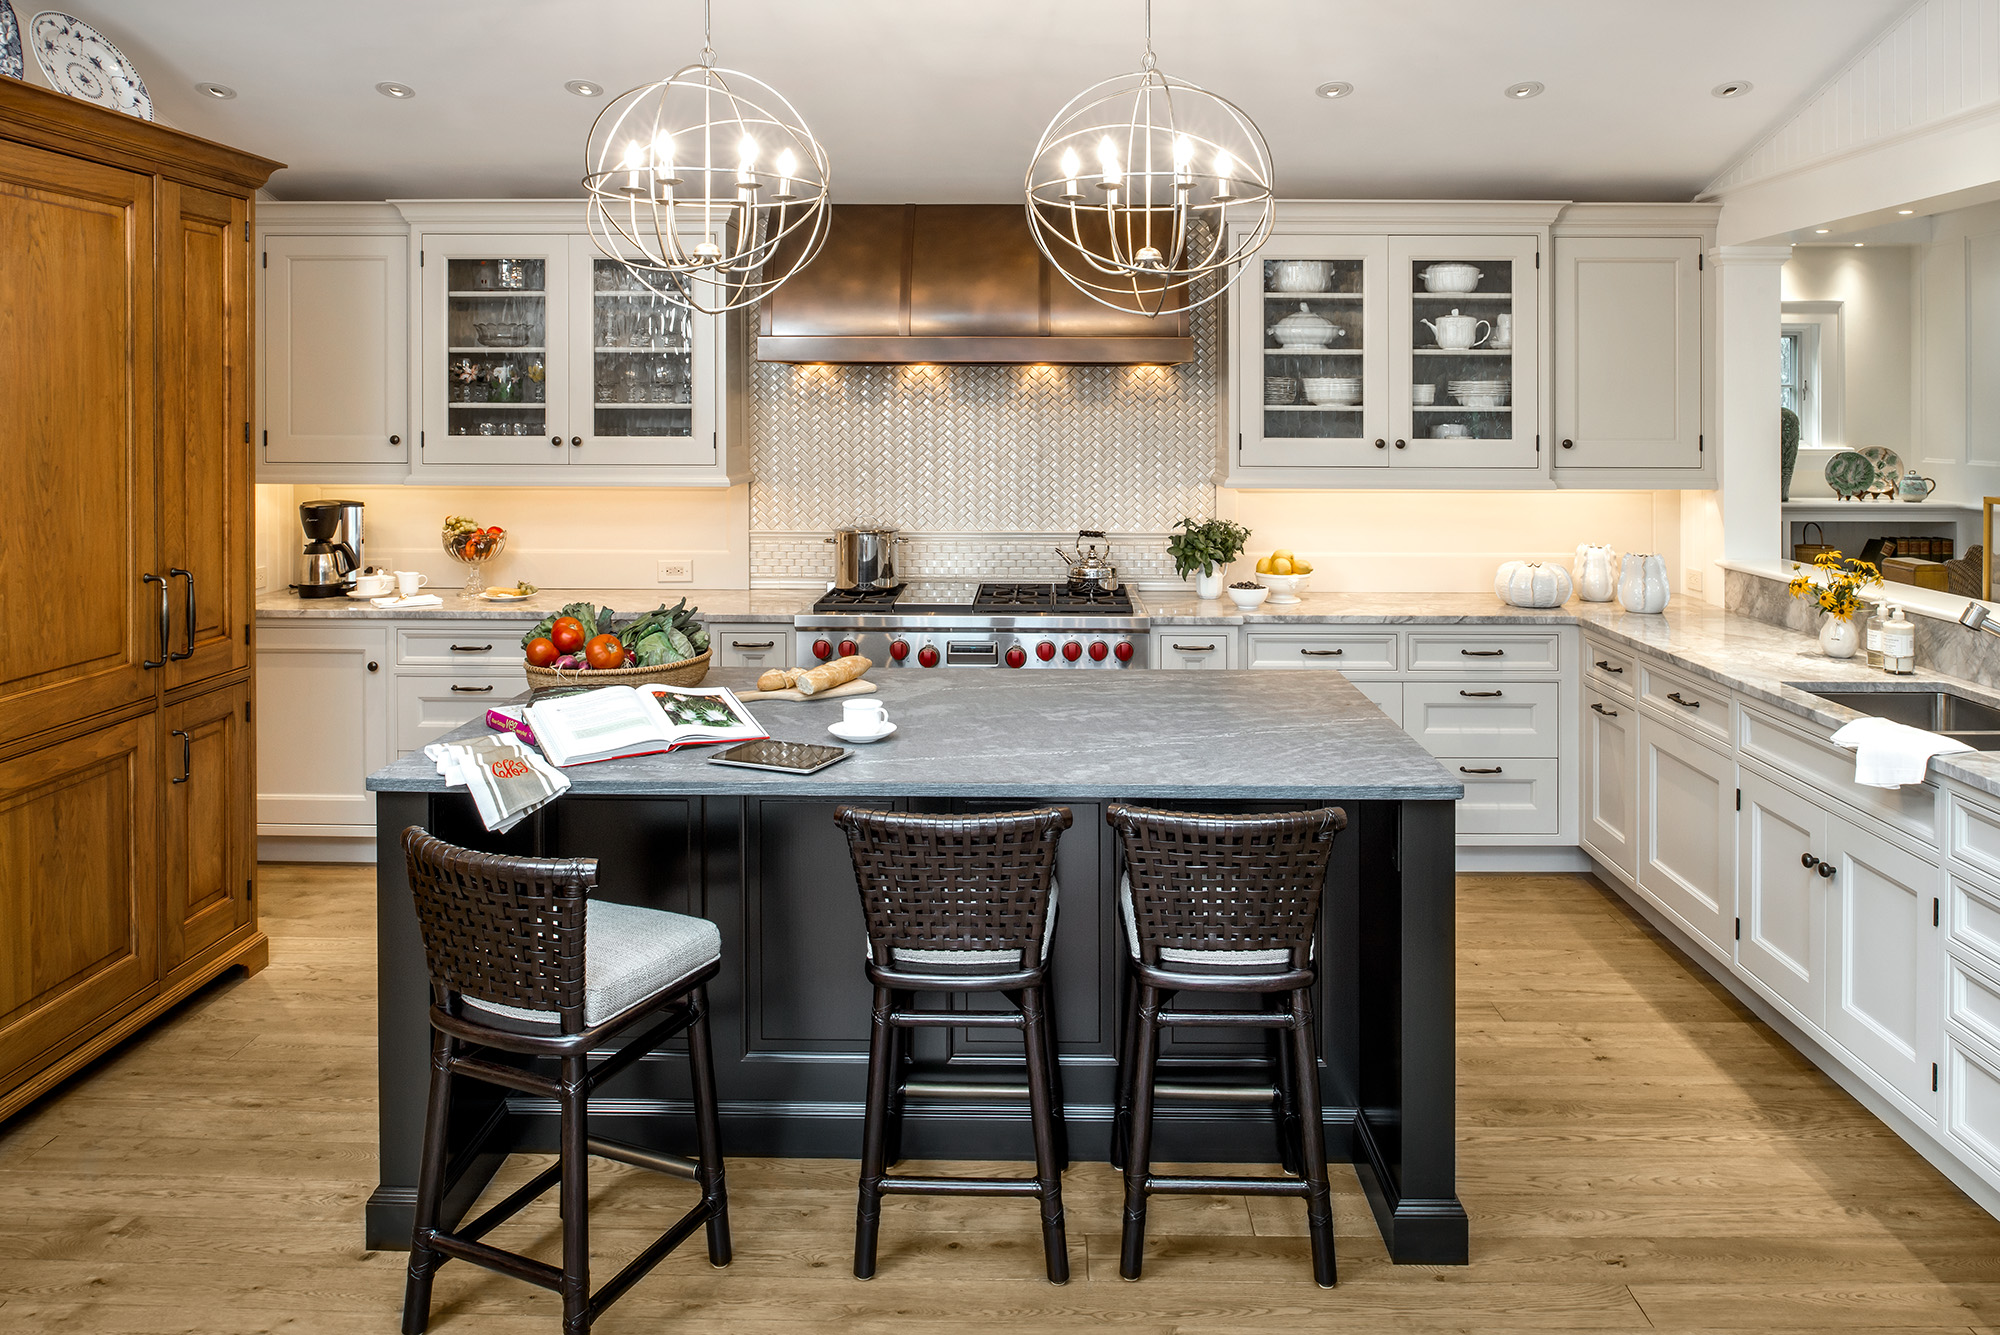 Interior Kitchen Photography